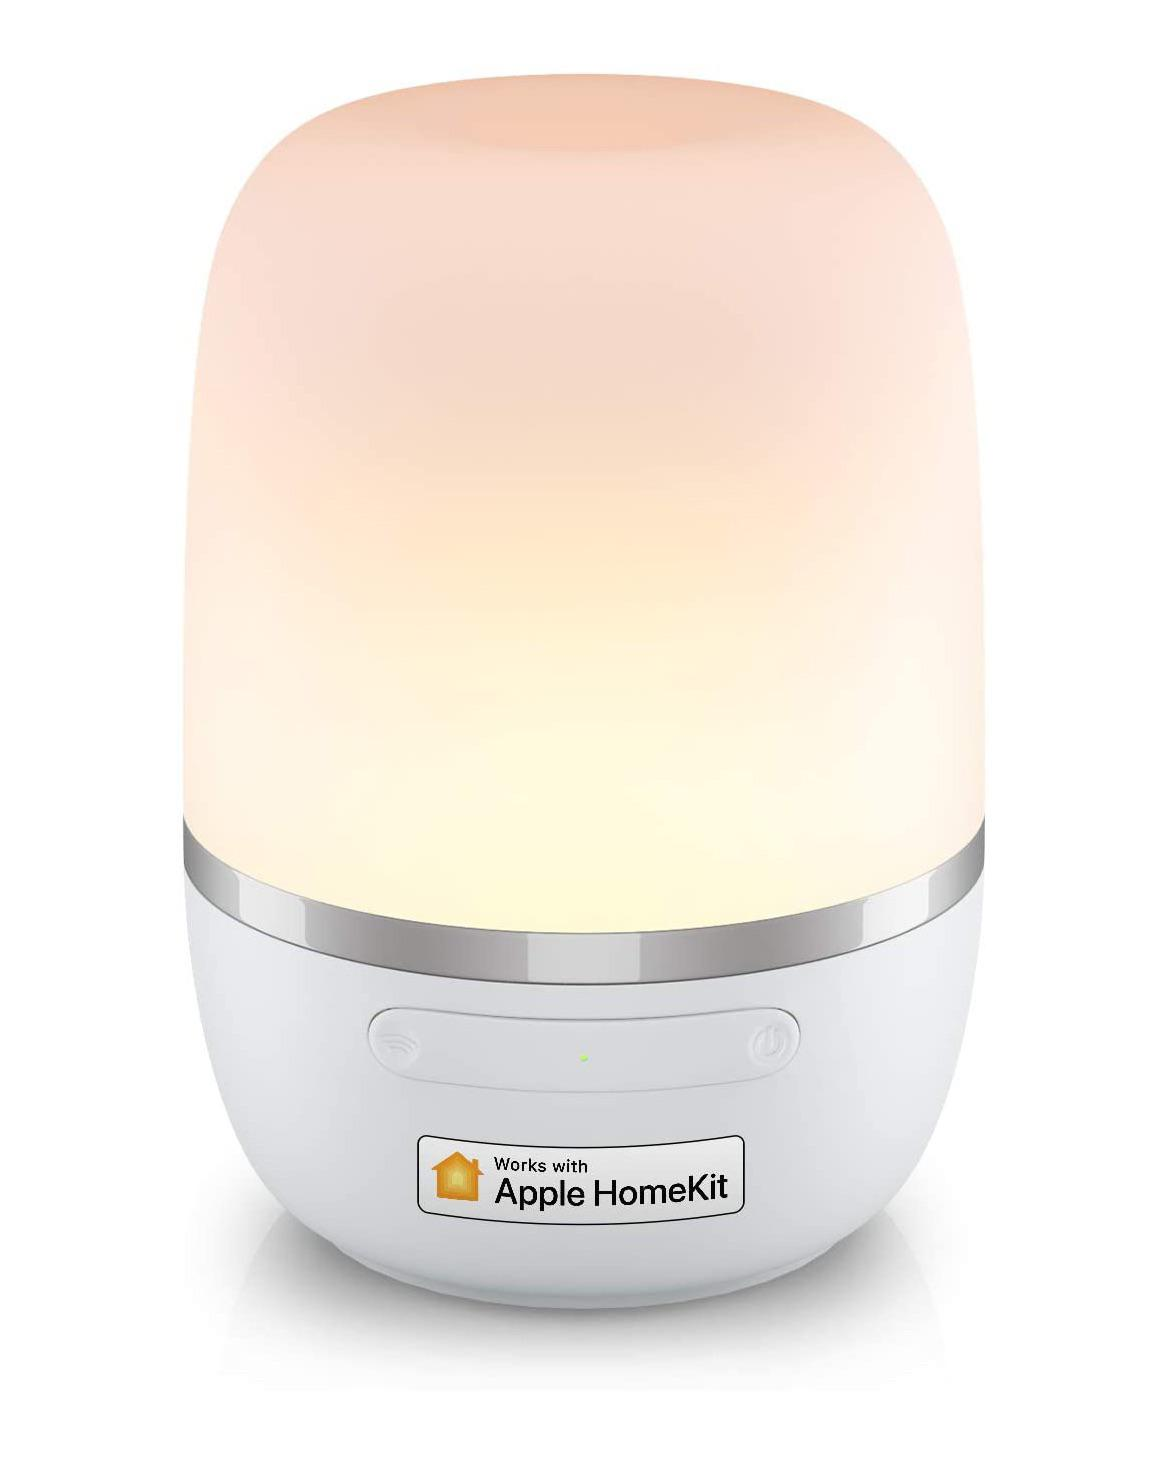 Another new HomeKit compatible light from Meross. Available on Amazon